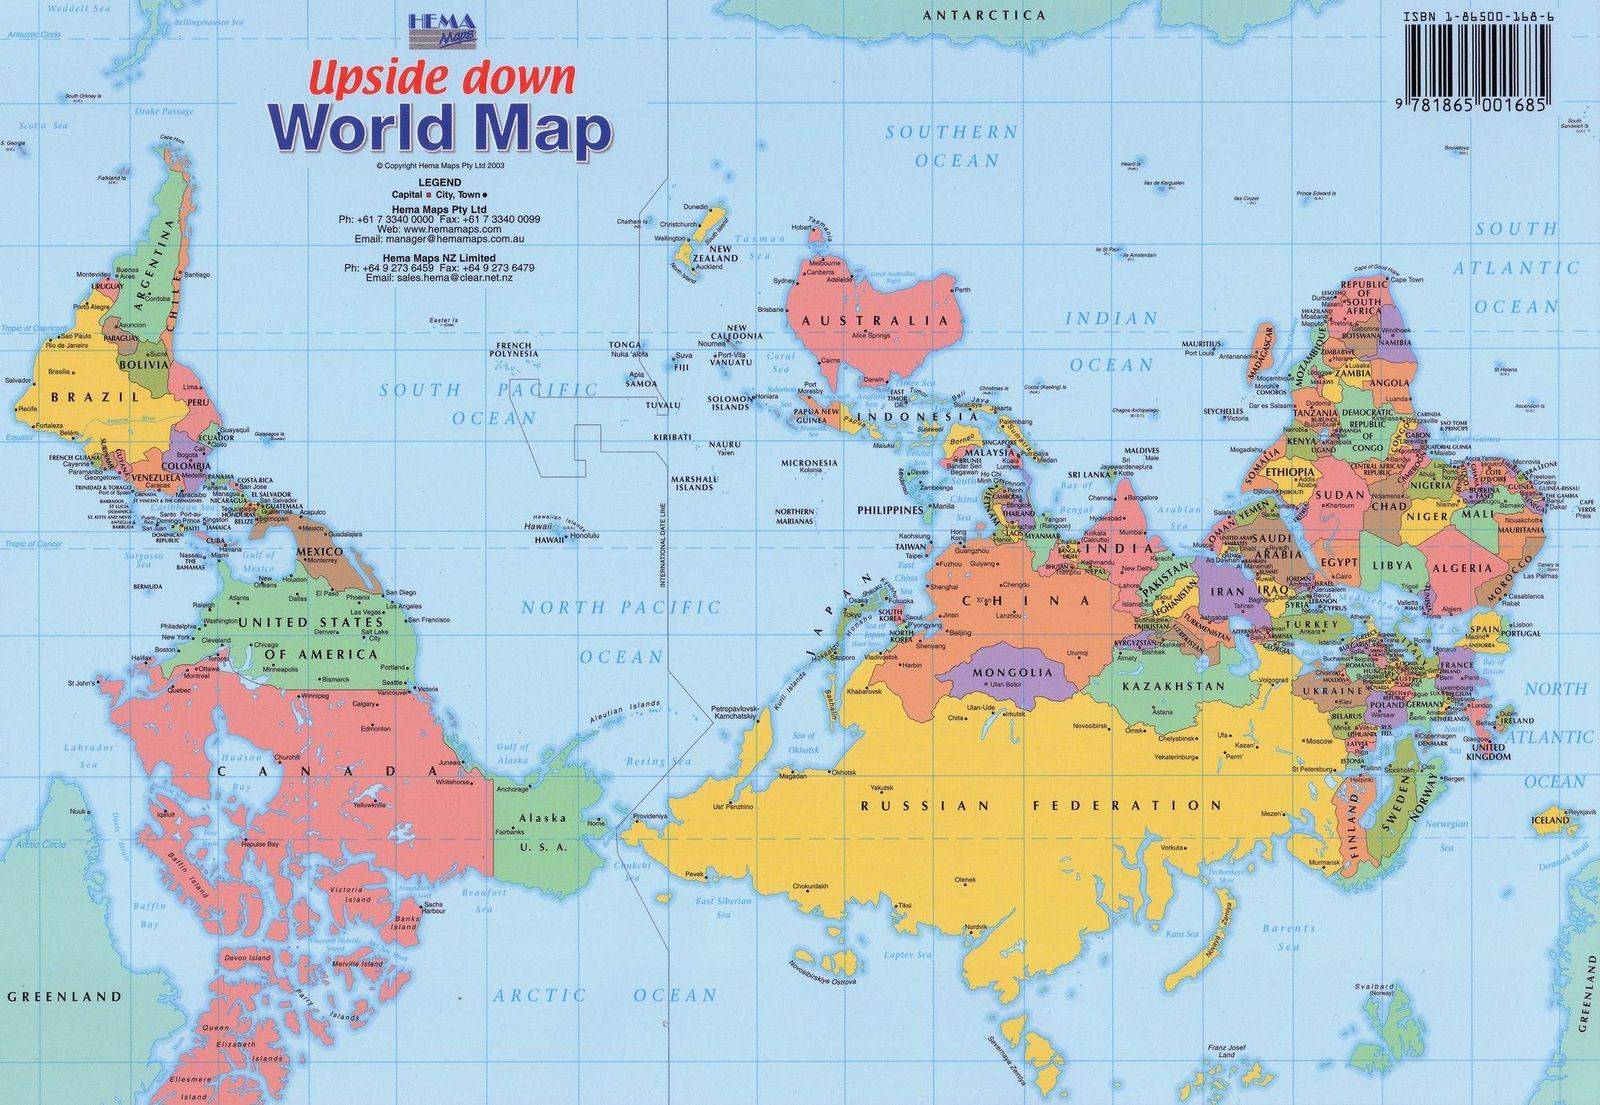 China view of world upside down world maps pinterest china view of world upside down gumiabroncs Images